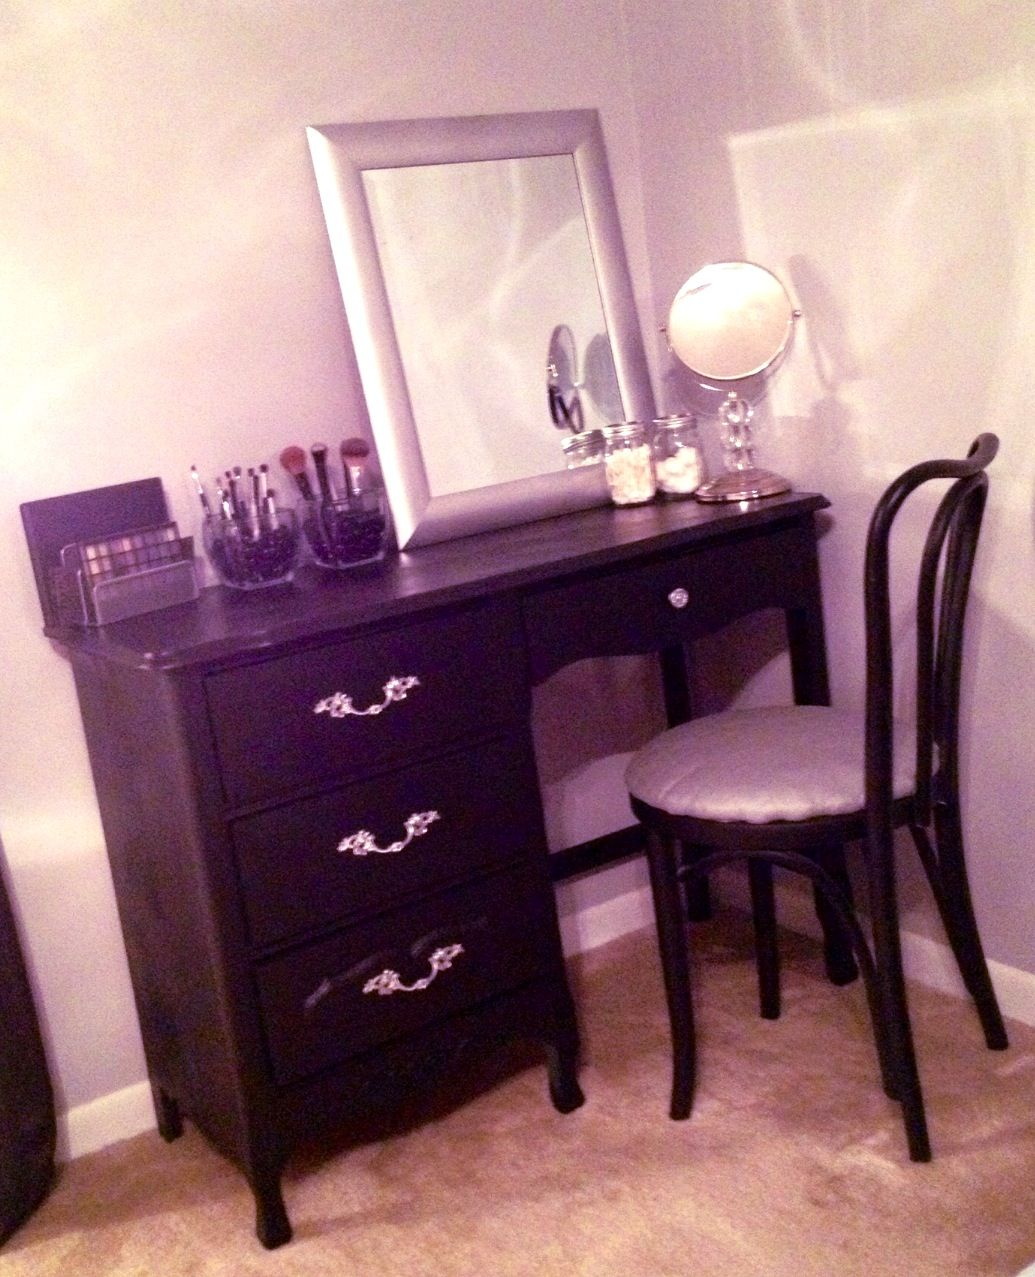 My Homemade Vanity One Man S Trash Is Another Determined Woman S Treasure Makeup Organization Dream